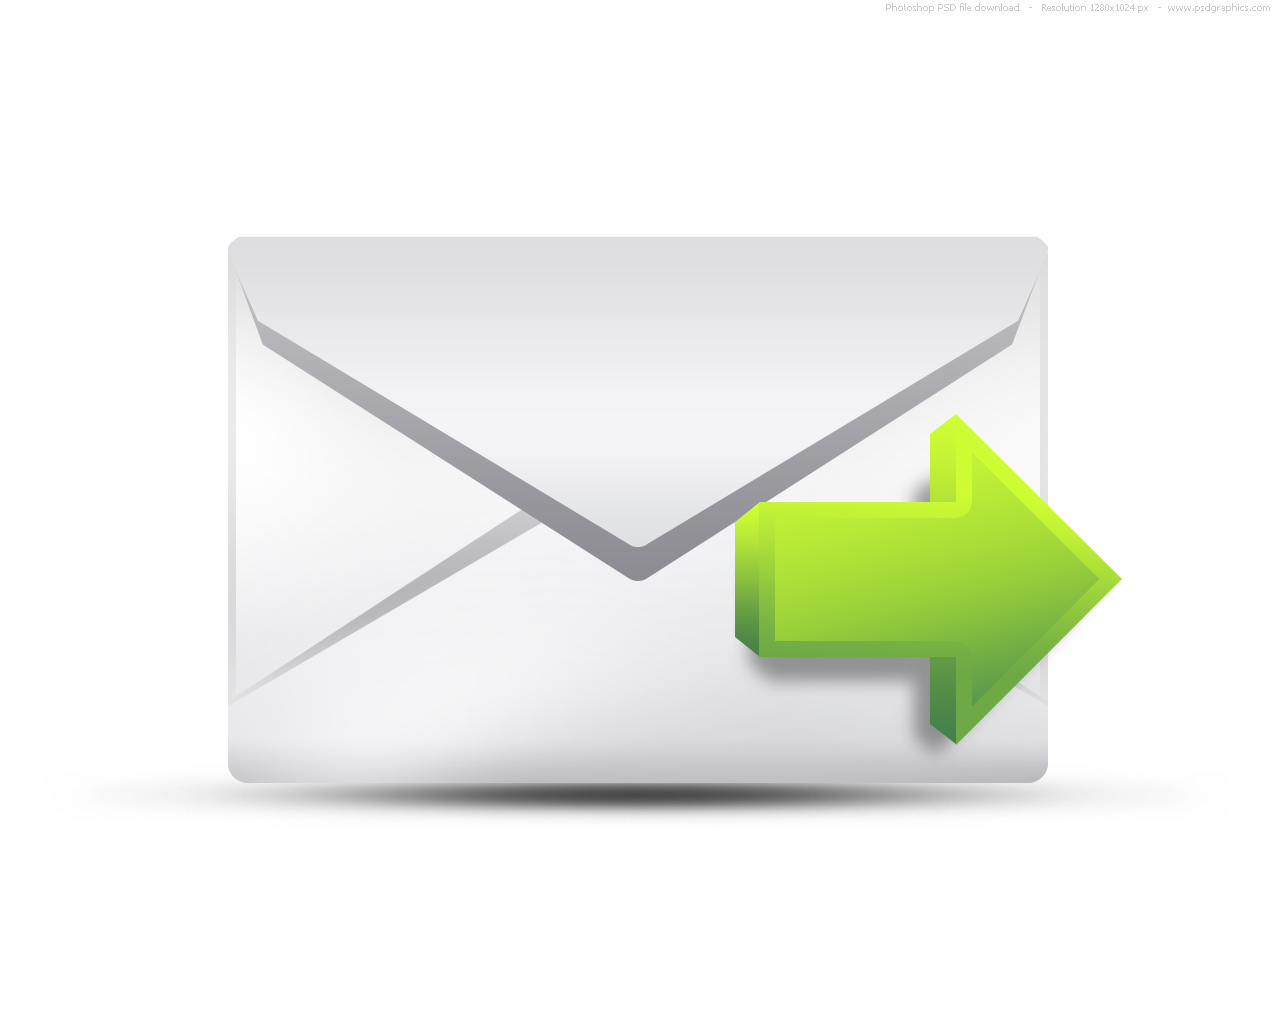 Outgoing email icon